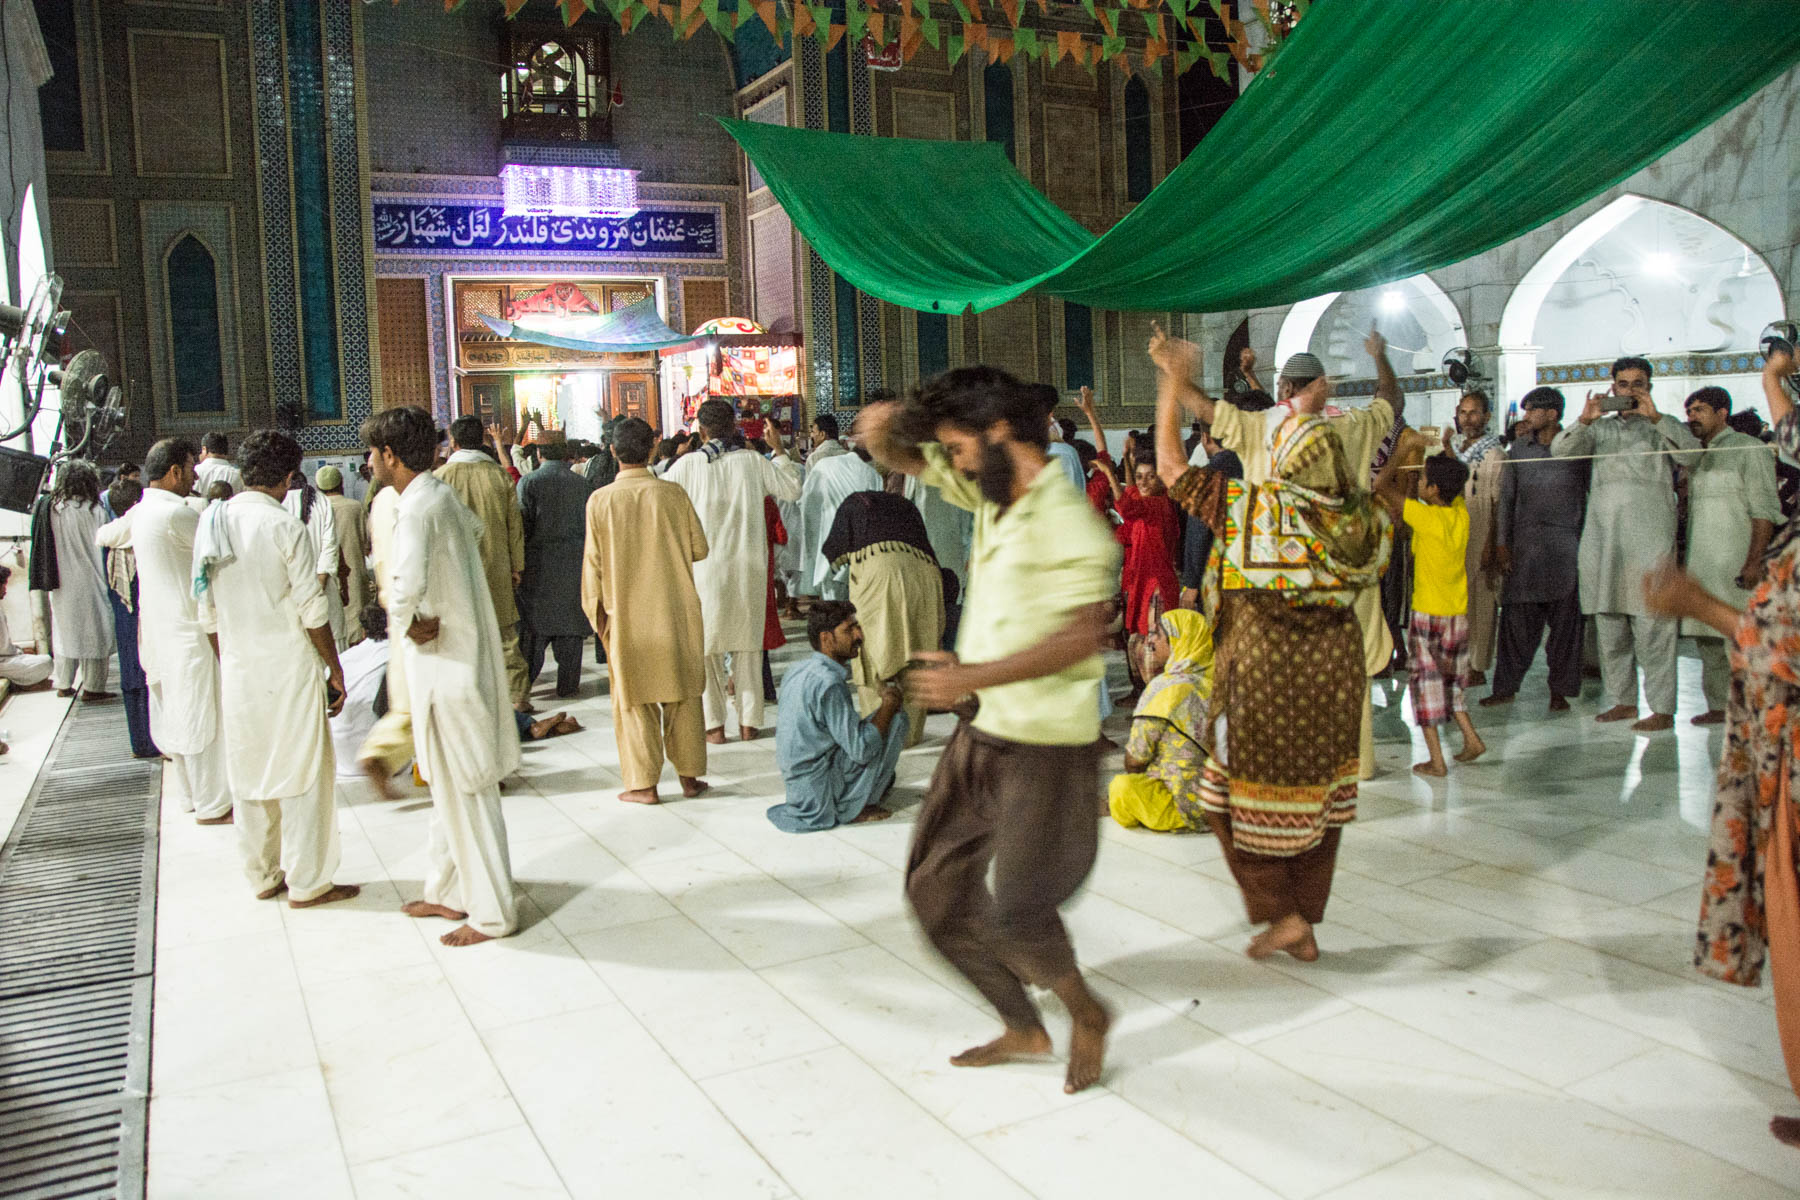 Sufi dancing at the Lal Shahbaz Qalandar shrine in Sehwan, Pakistan